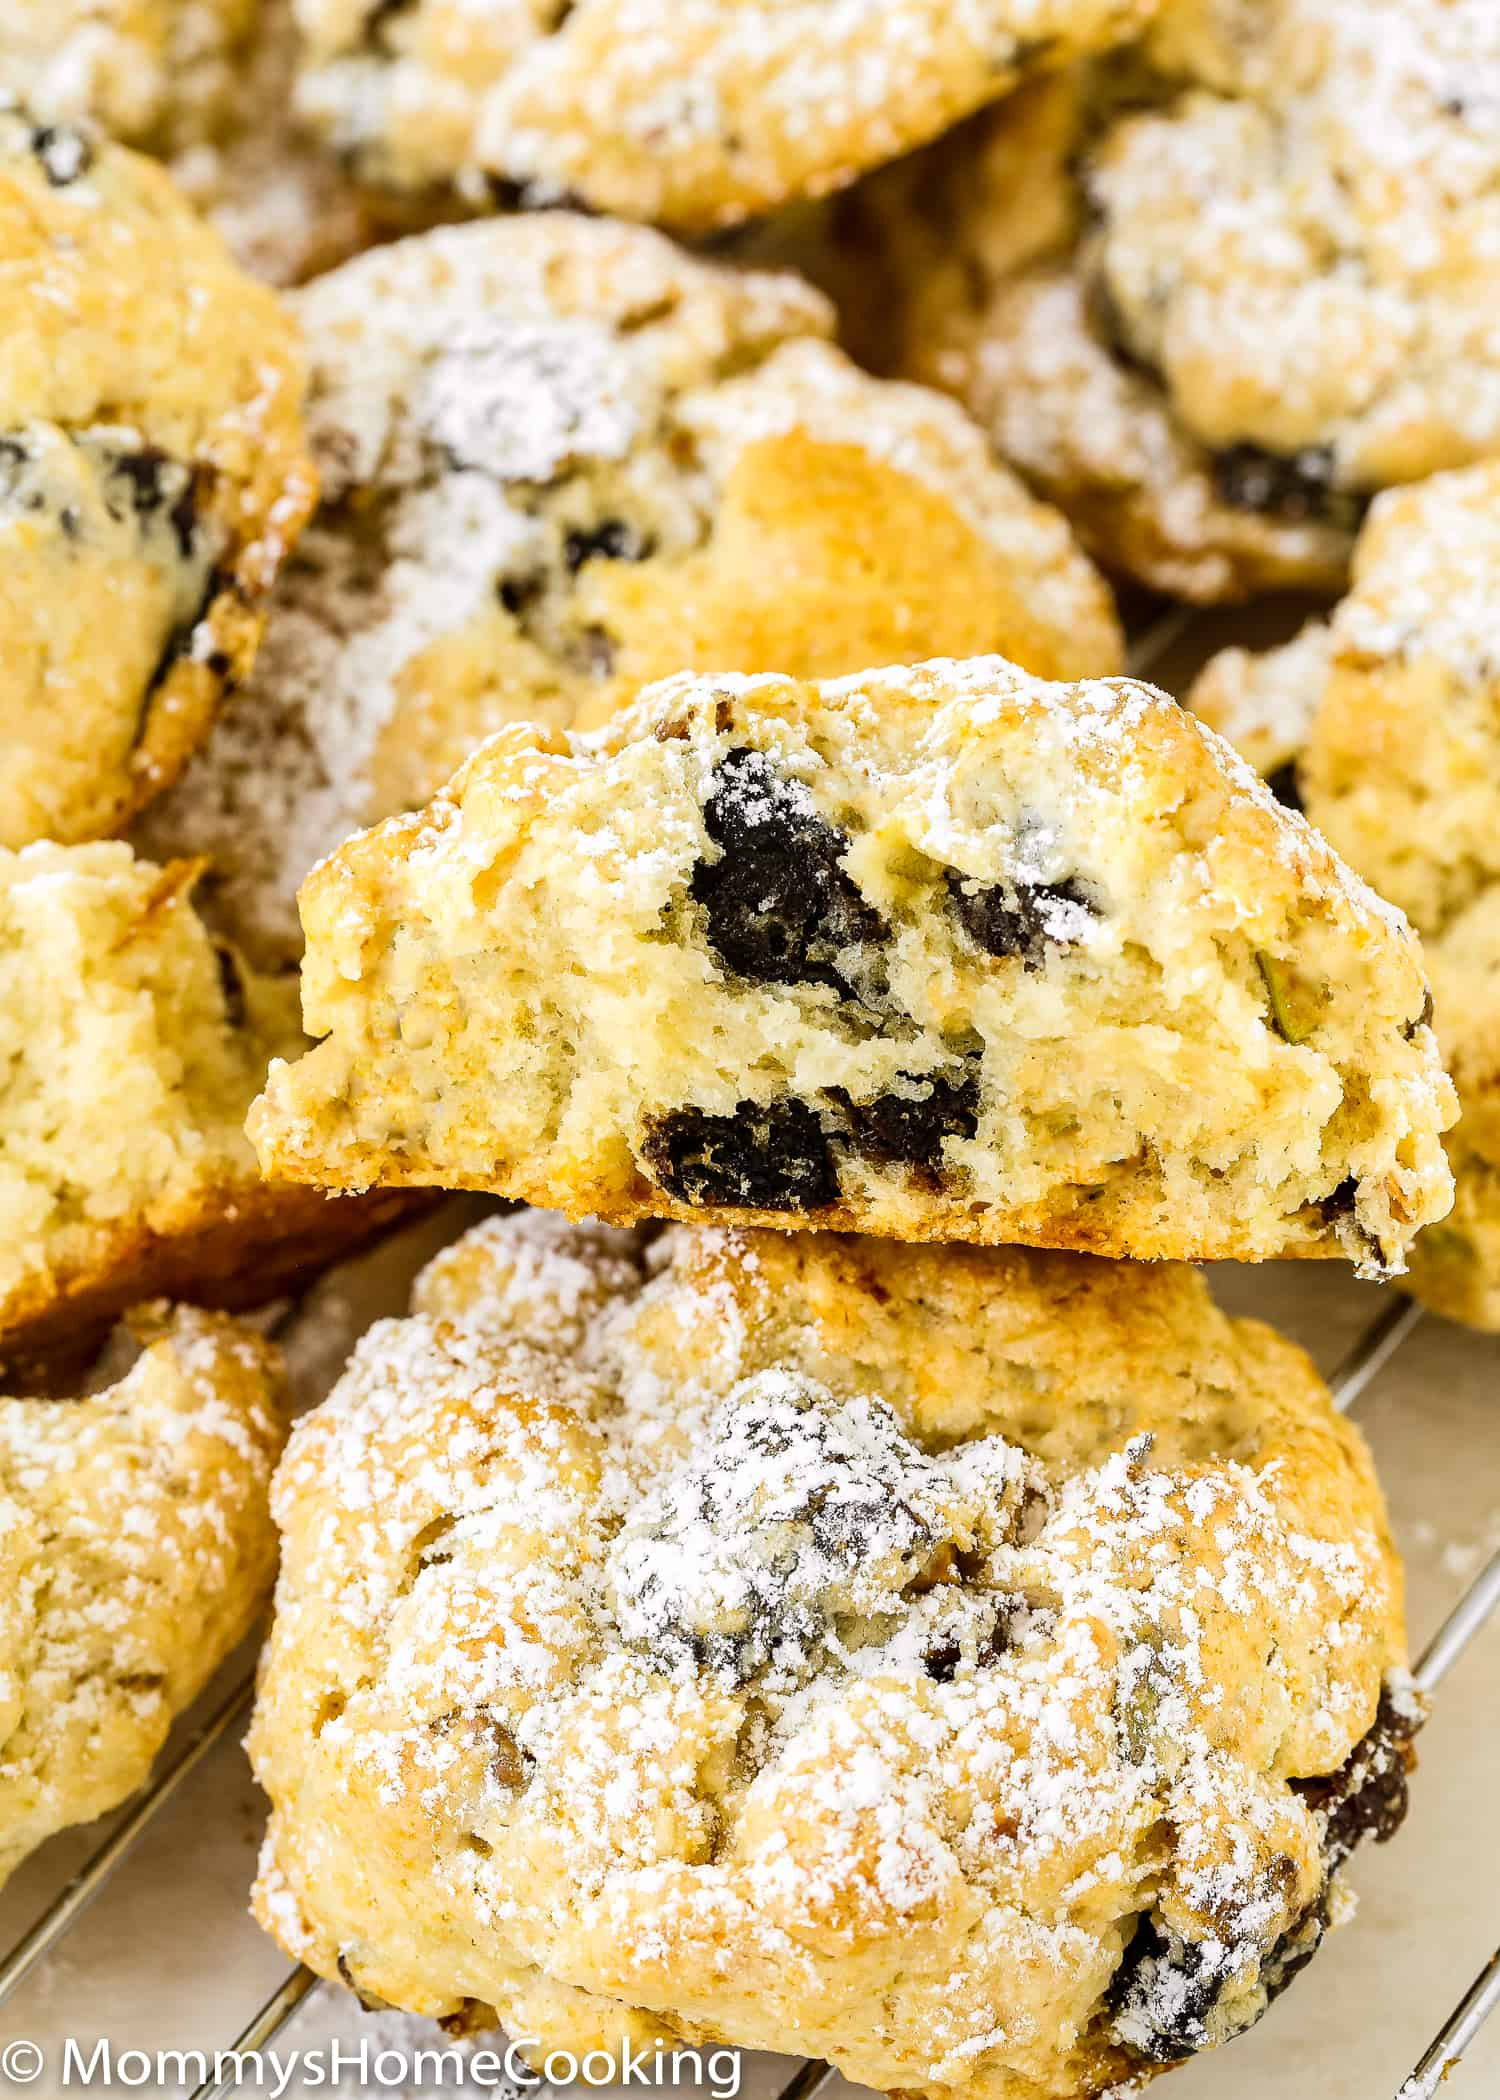 These Eggless Prune-Pistachio Scones are über buttery and flaky! Made from scratch with California prunes and pistachios, these scones make a delightful sweet treat for any occasion. They will be a big hit every time you make them. https://mommyshomecooking.com